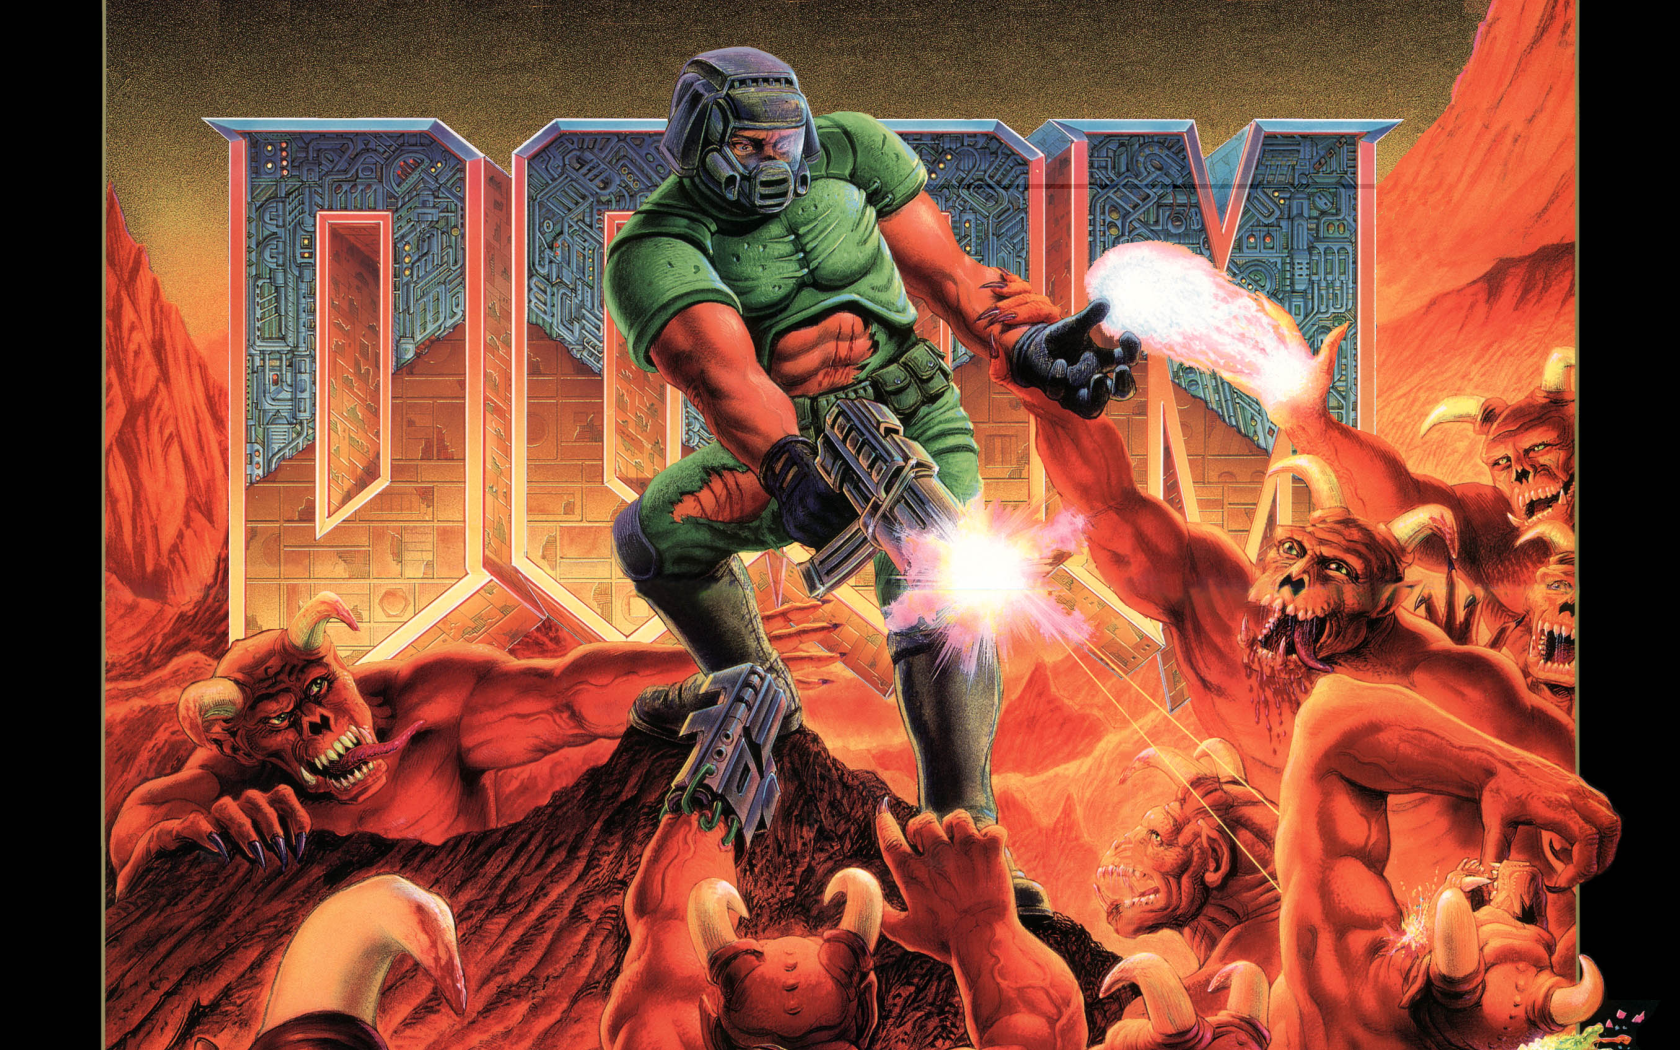 1680x1050 Doom wallpaper